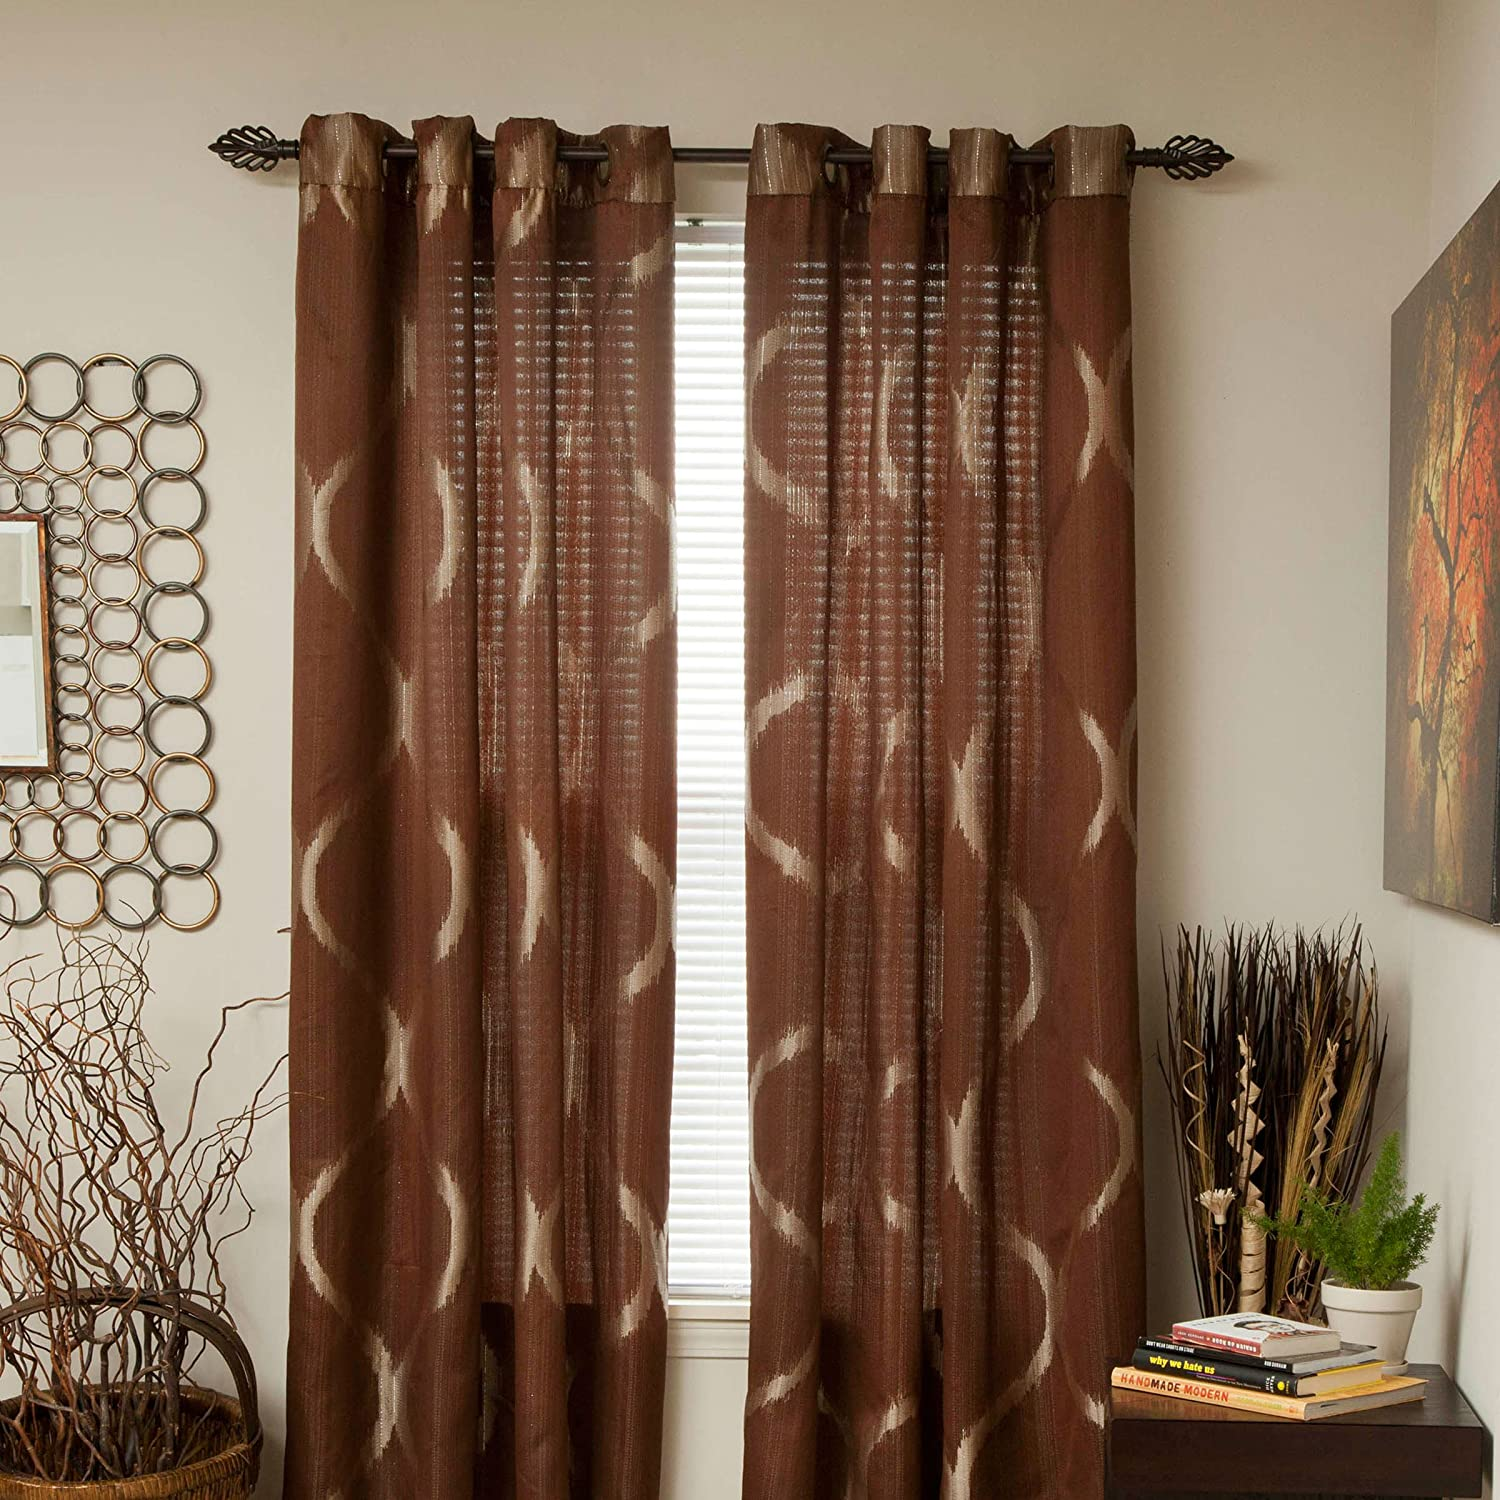 modern ready metallic panel arran slot curtains itm top foil curtain voile made